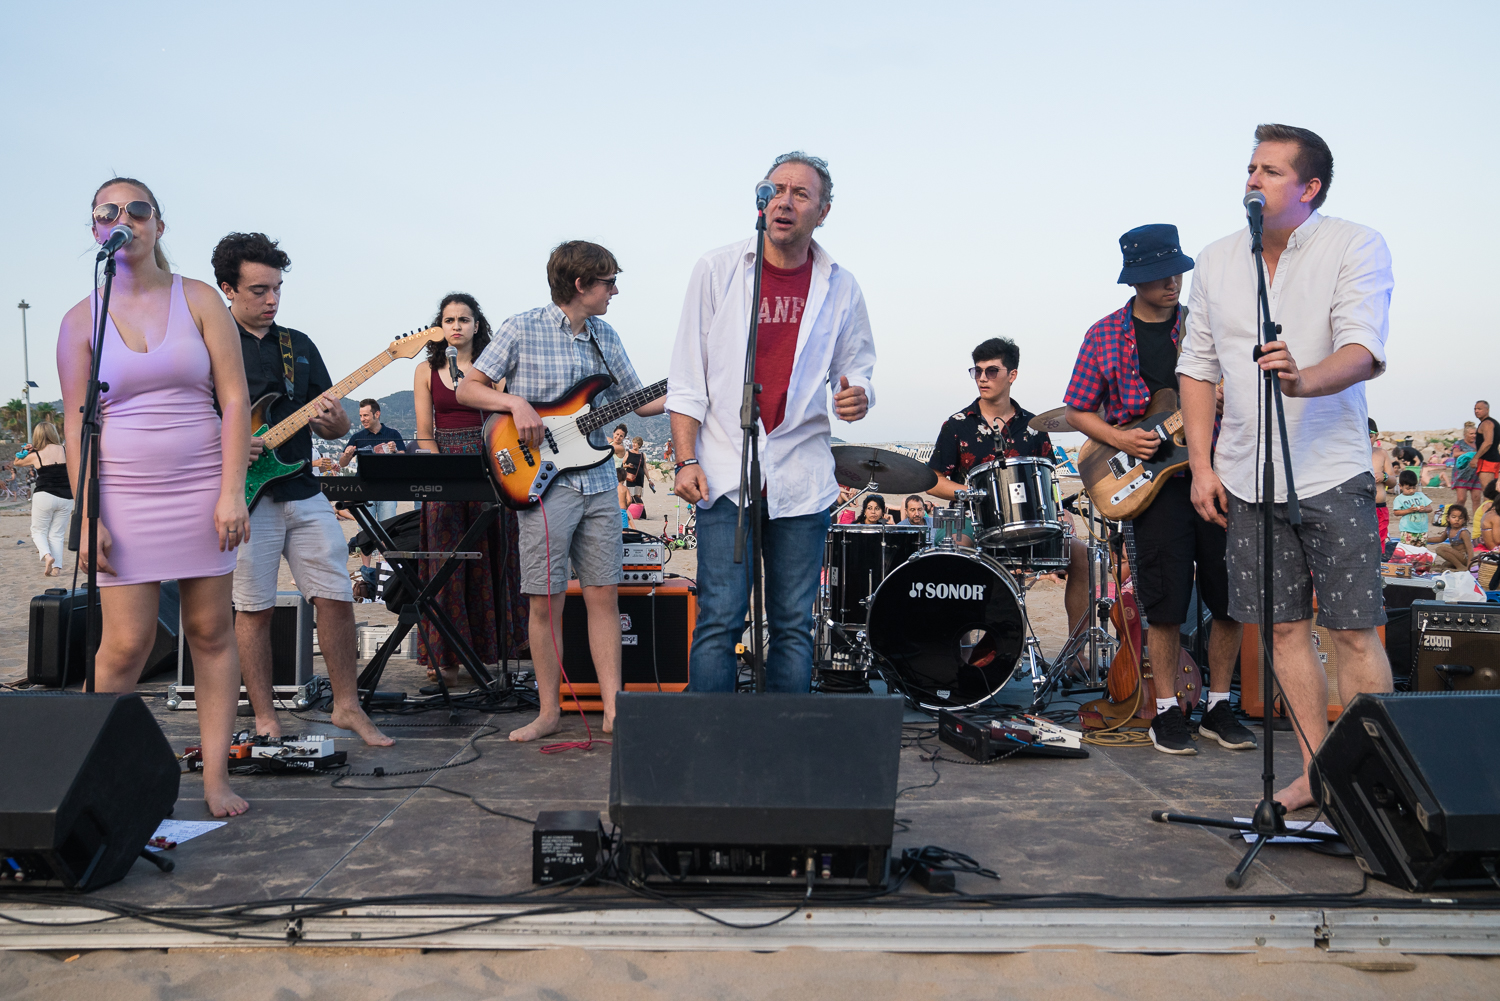 A band plays on a beach stage.